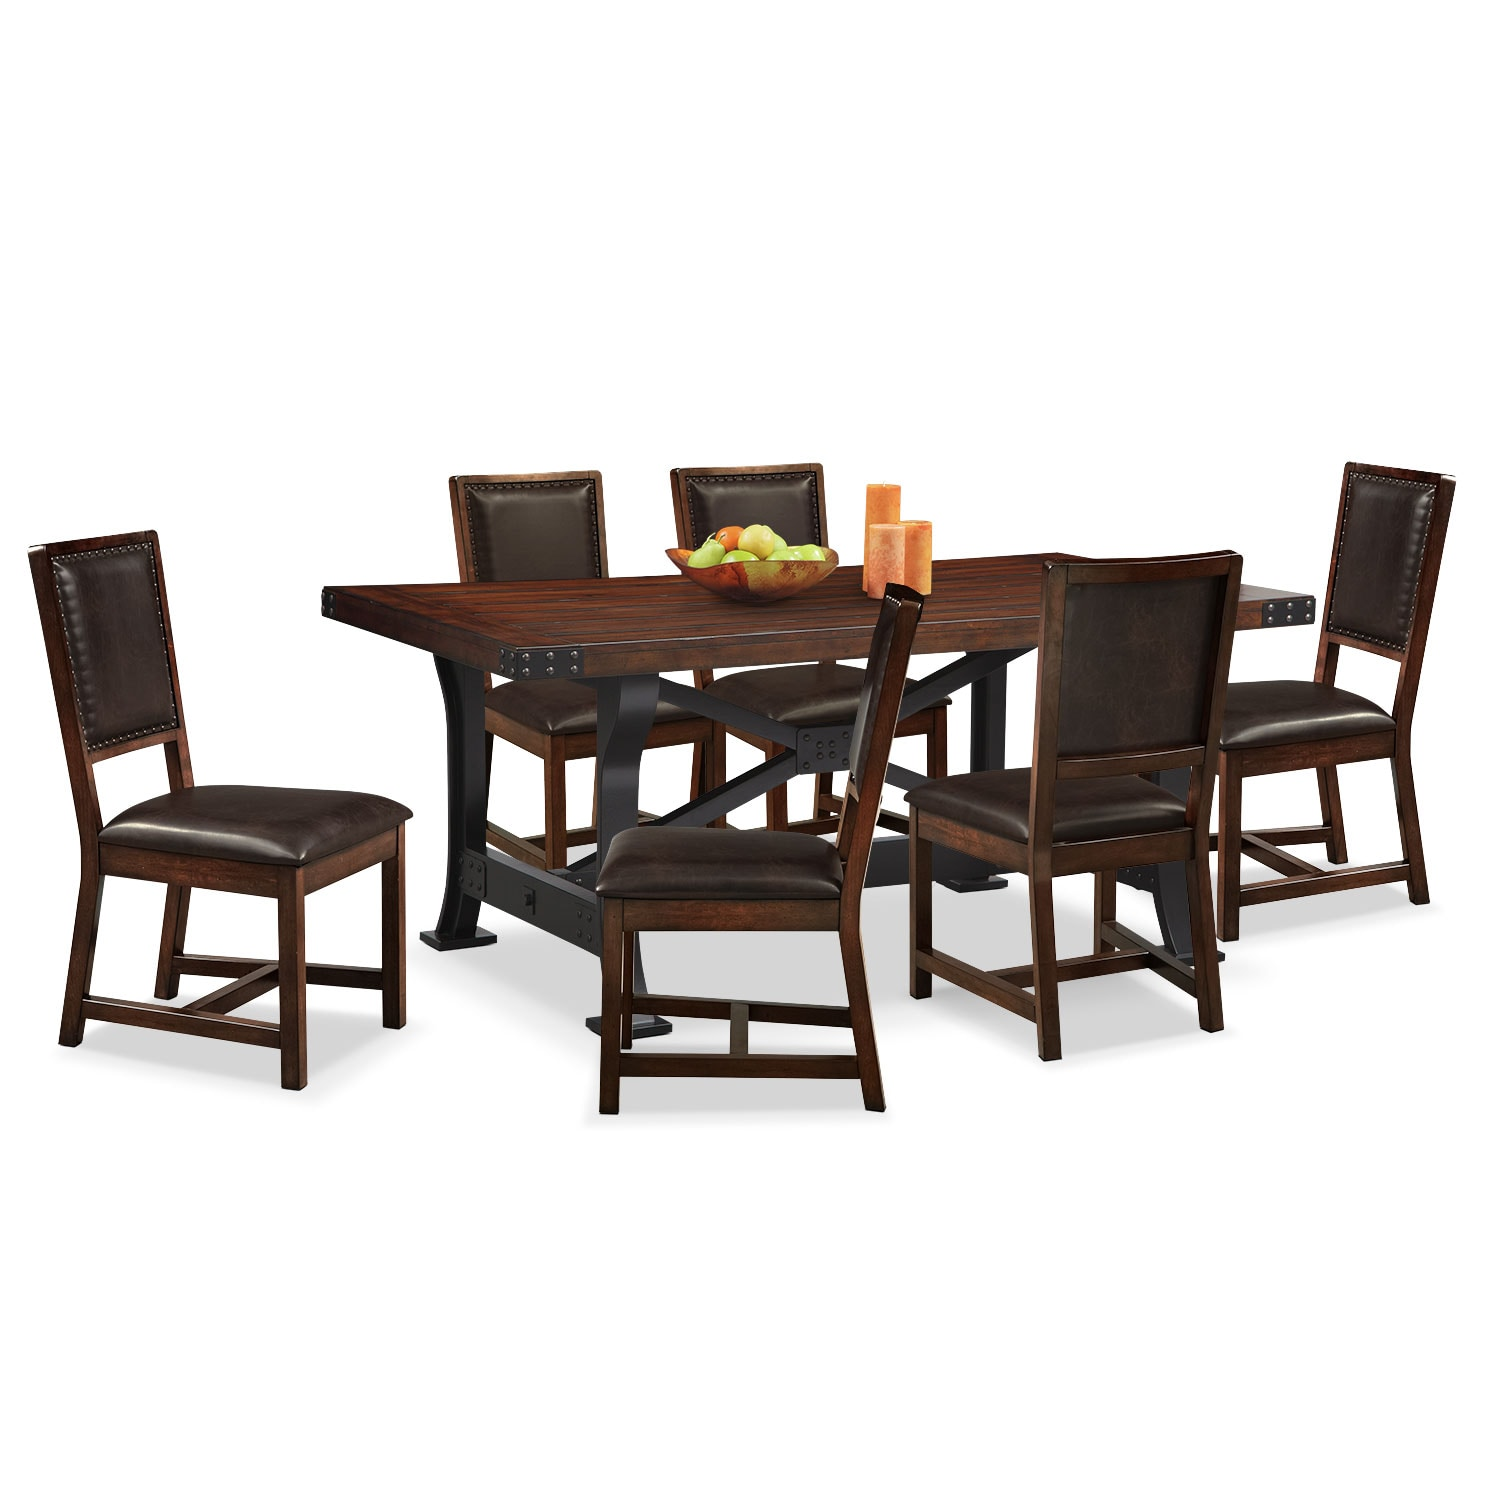 Dining Room Furniture - Newcastle Standard Height 7 Pc. Dining Room